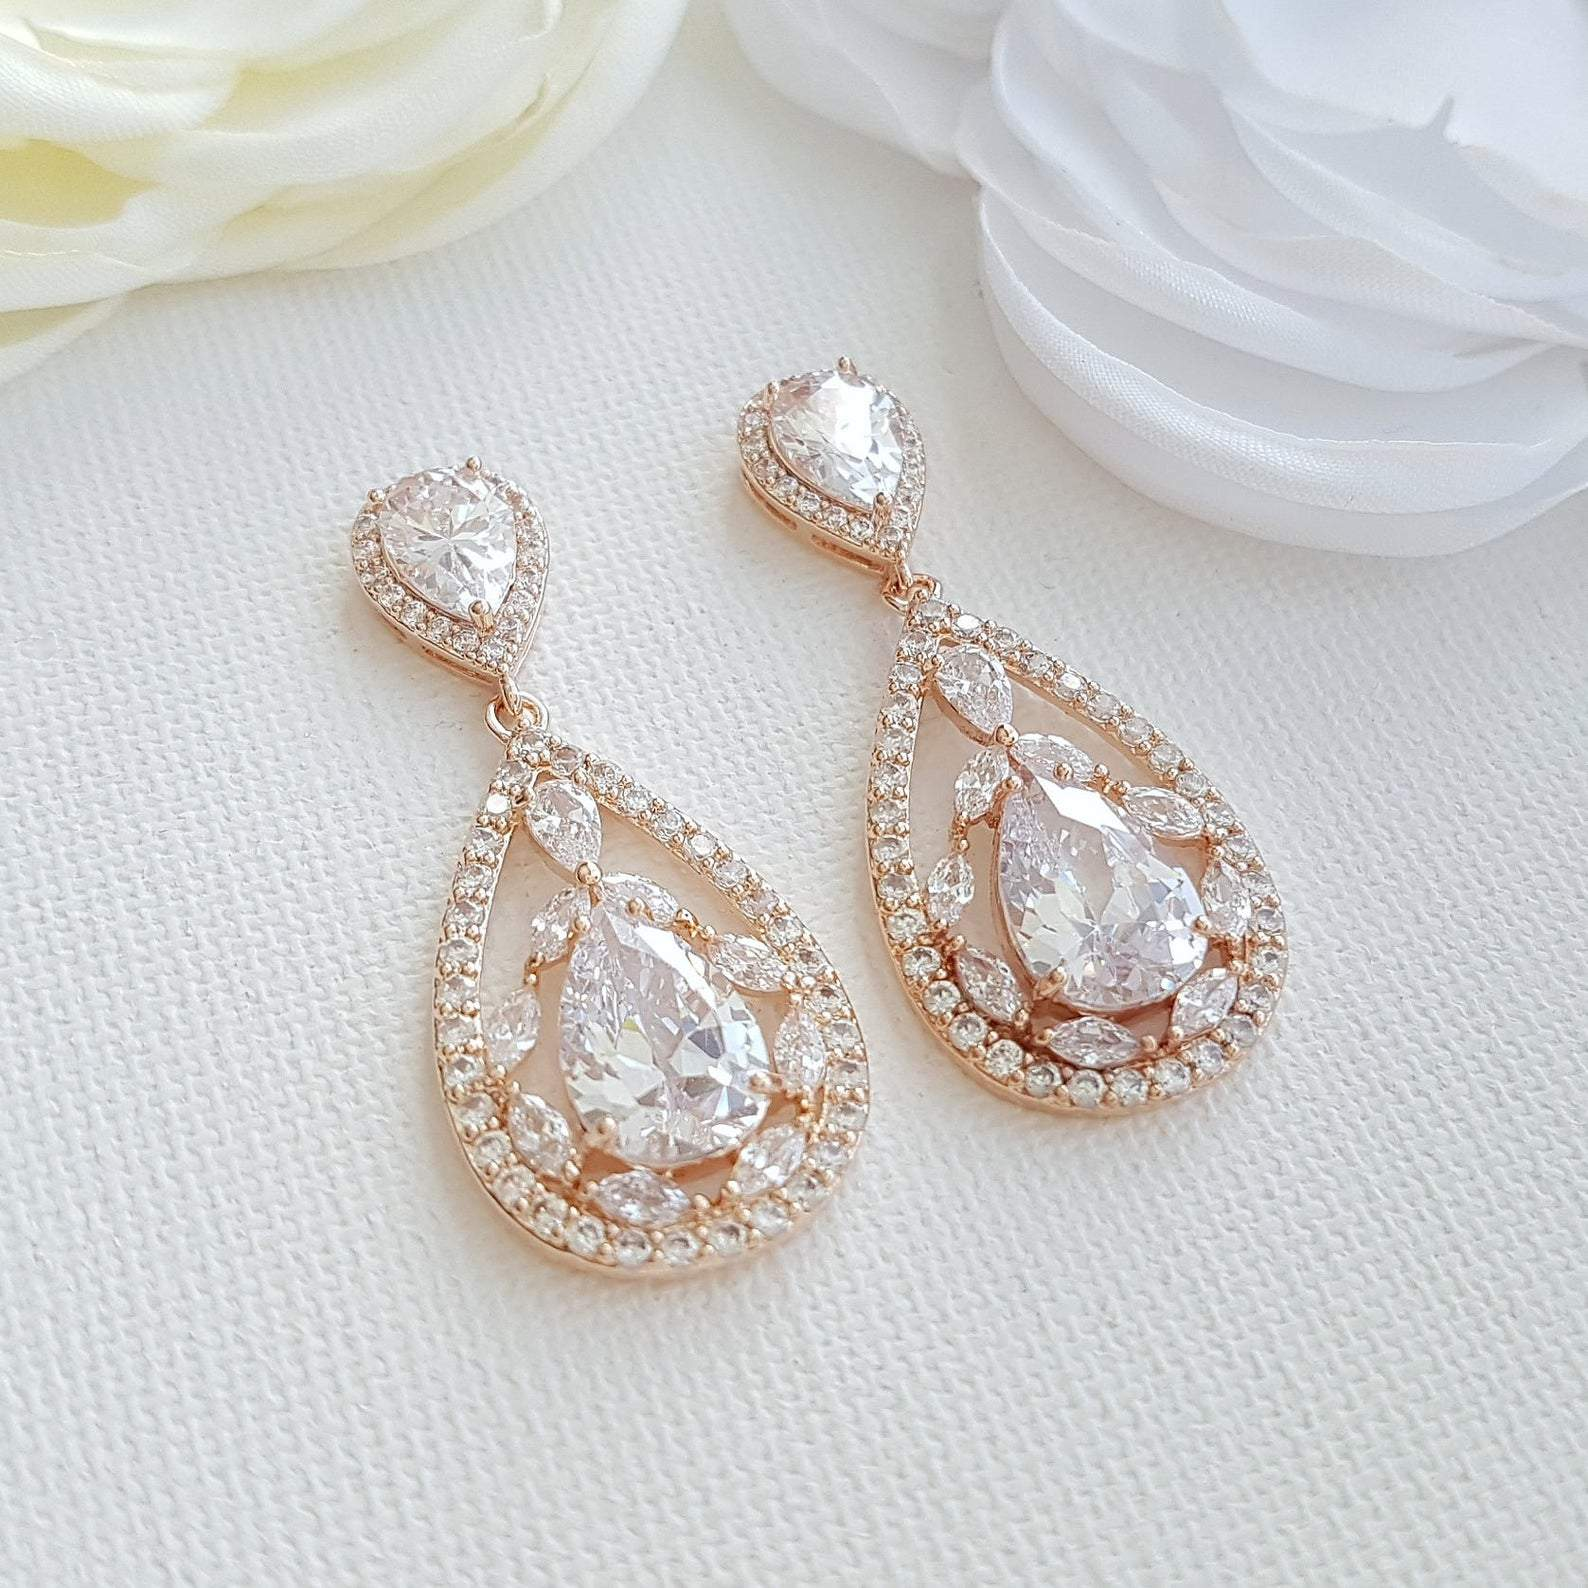 Rose gold Plated Drop Earrings for Brides-Esther